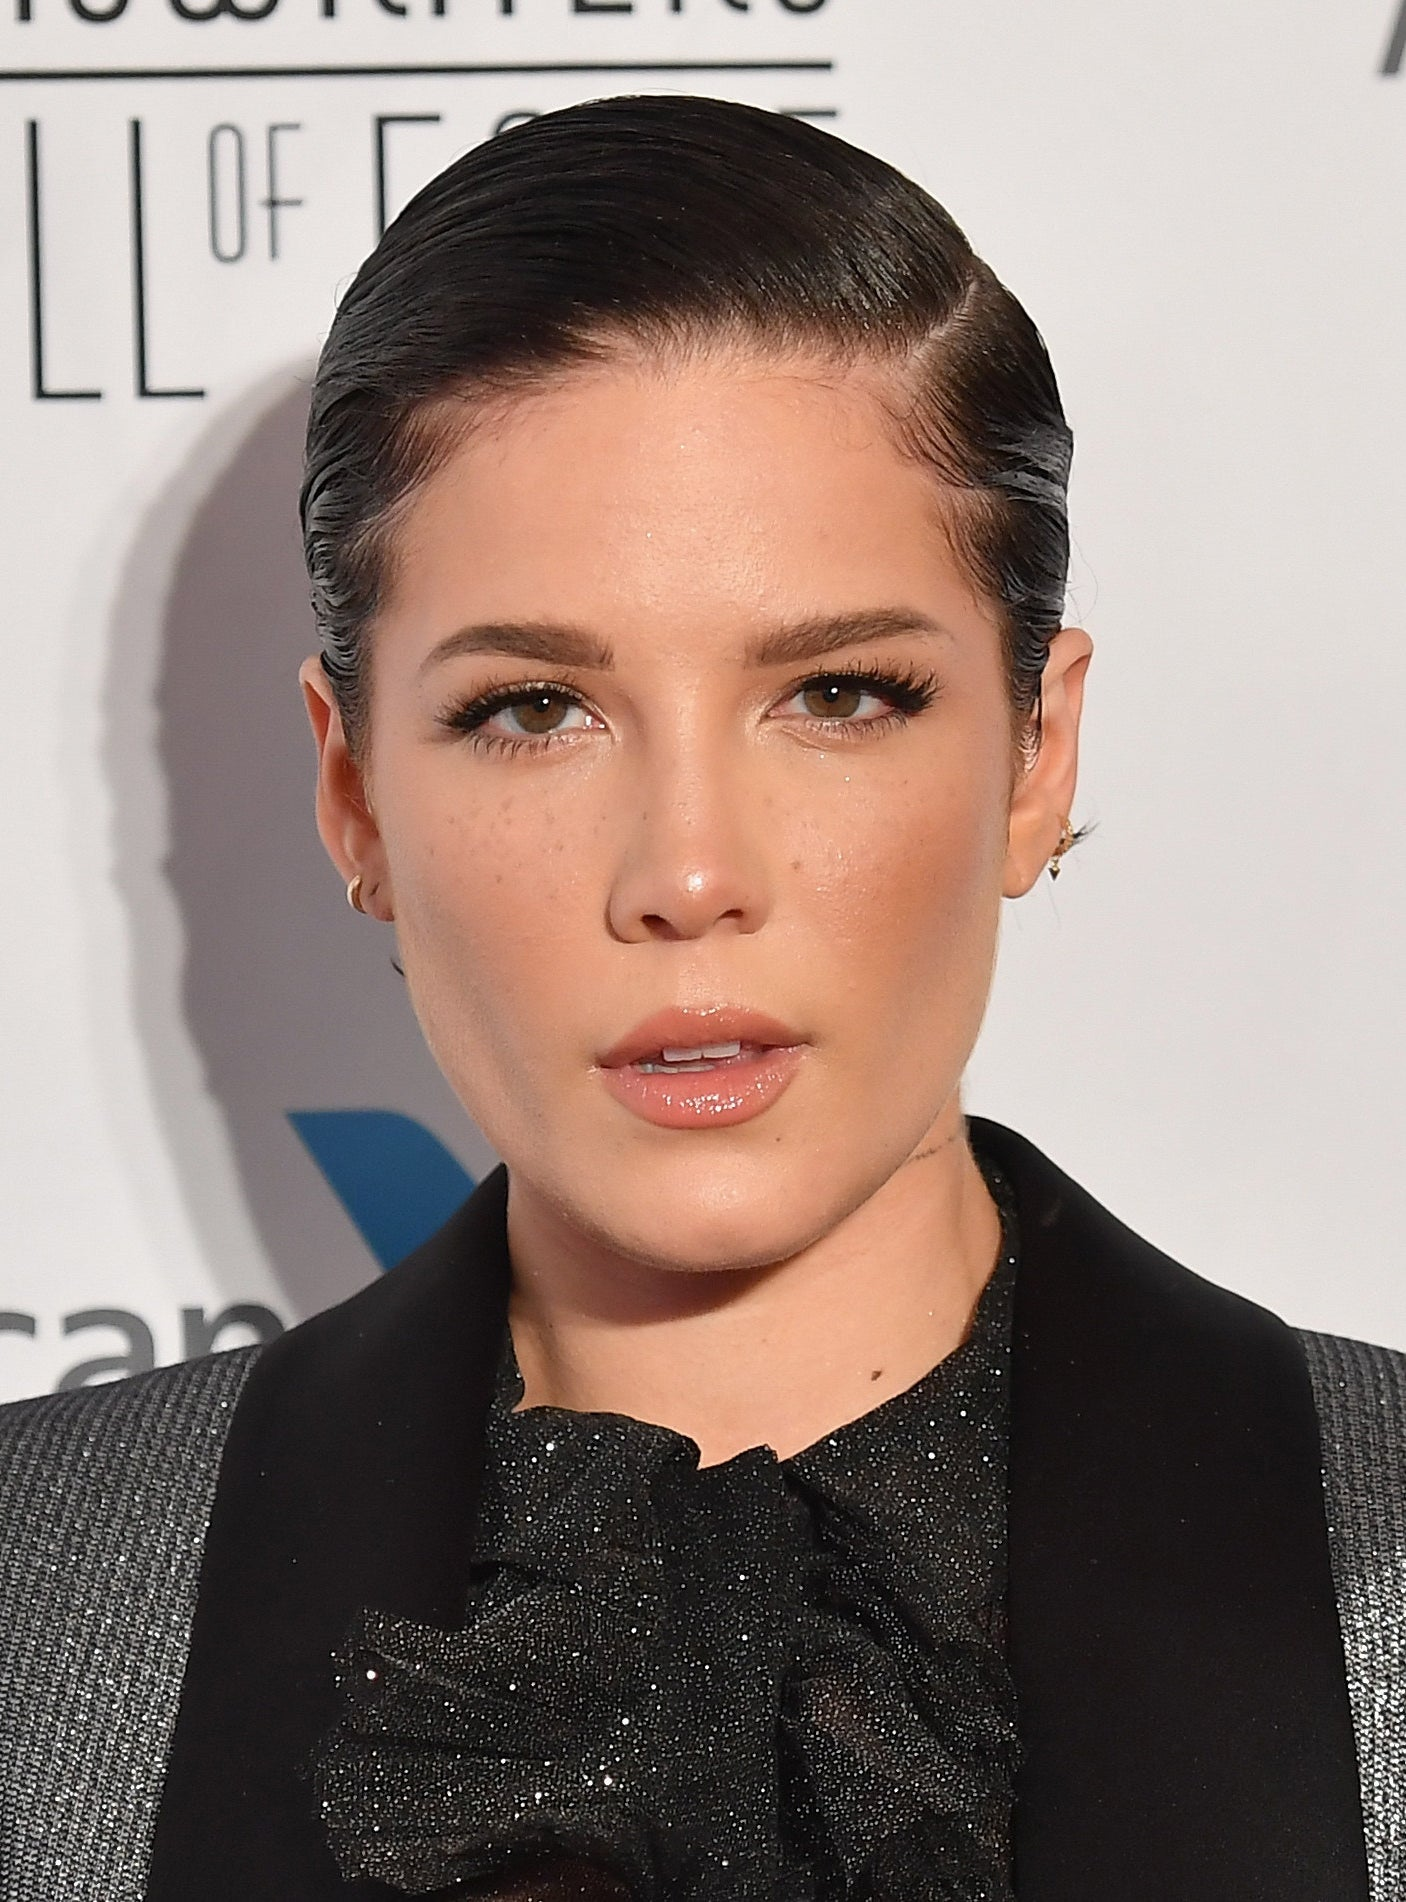 Halsey with a slicked-back pixie cut, looking directly into the camera